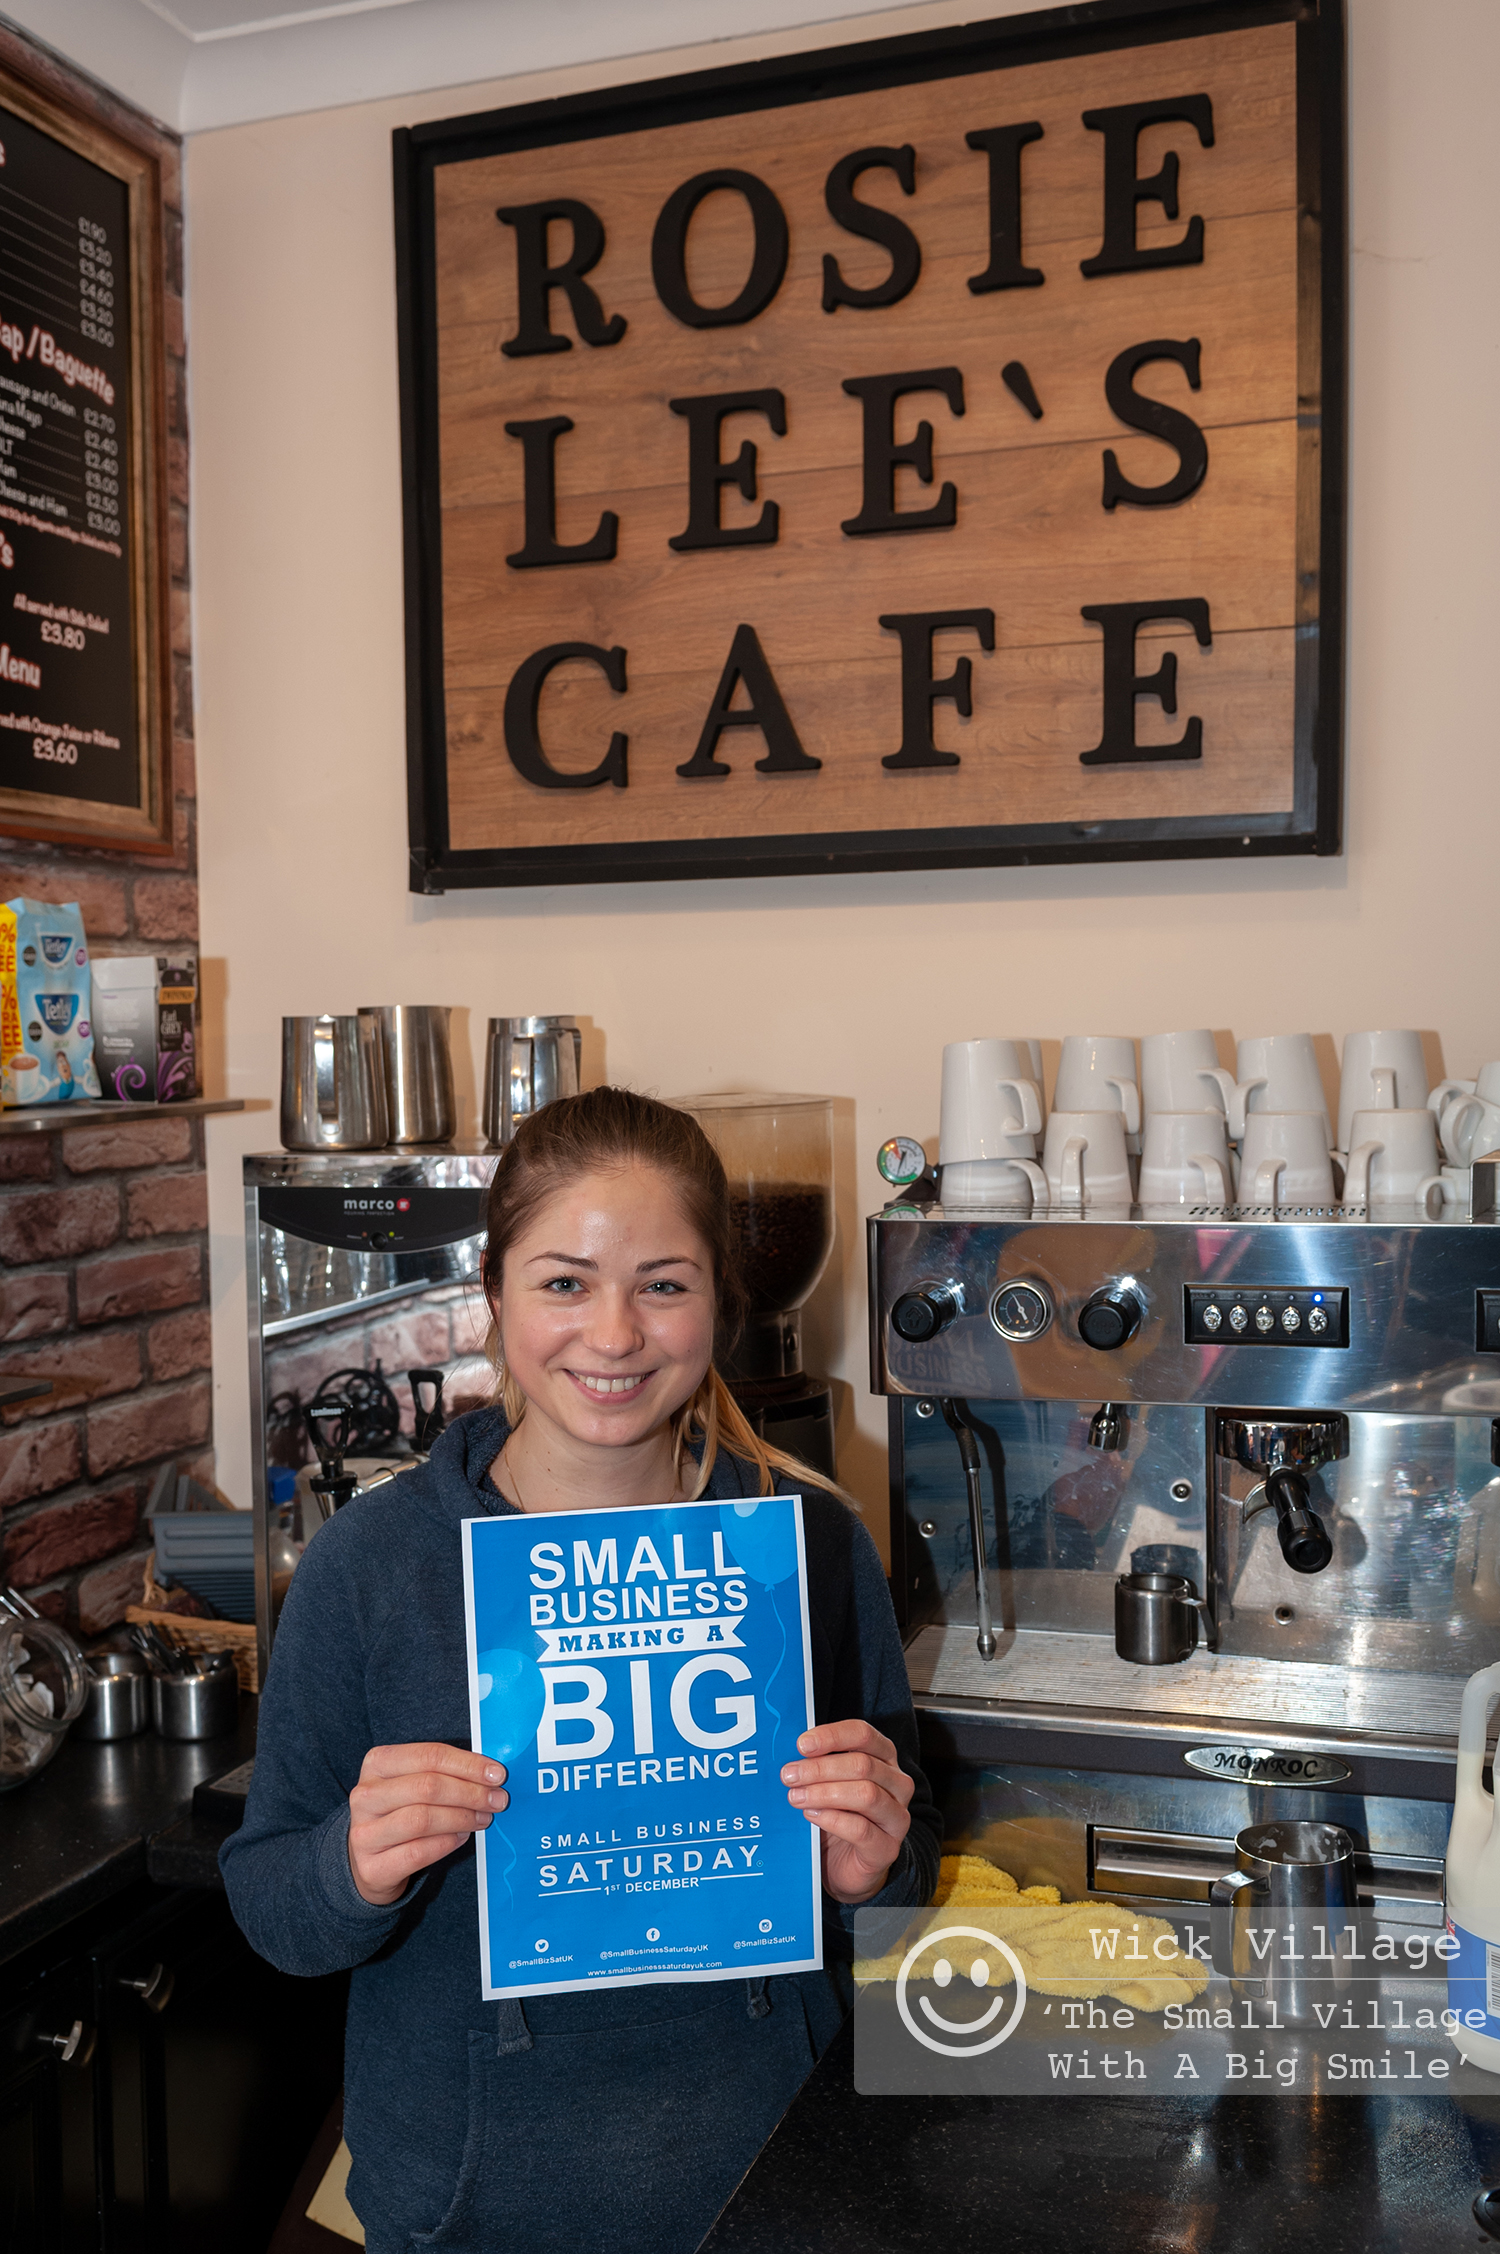 Wick, Littlehampton, West Sussex, UK. 1st December 2018. Traders in Wick Village support the Small Business Saturday campaign. In Pic: Rosie Lee's Cafe.